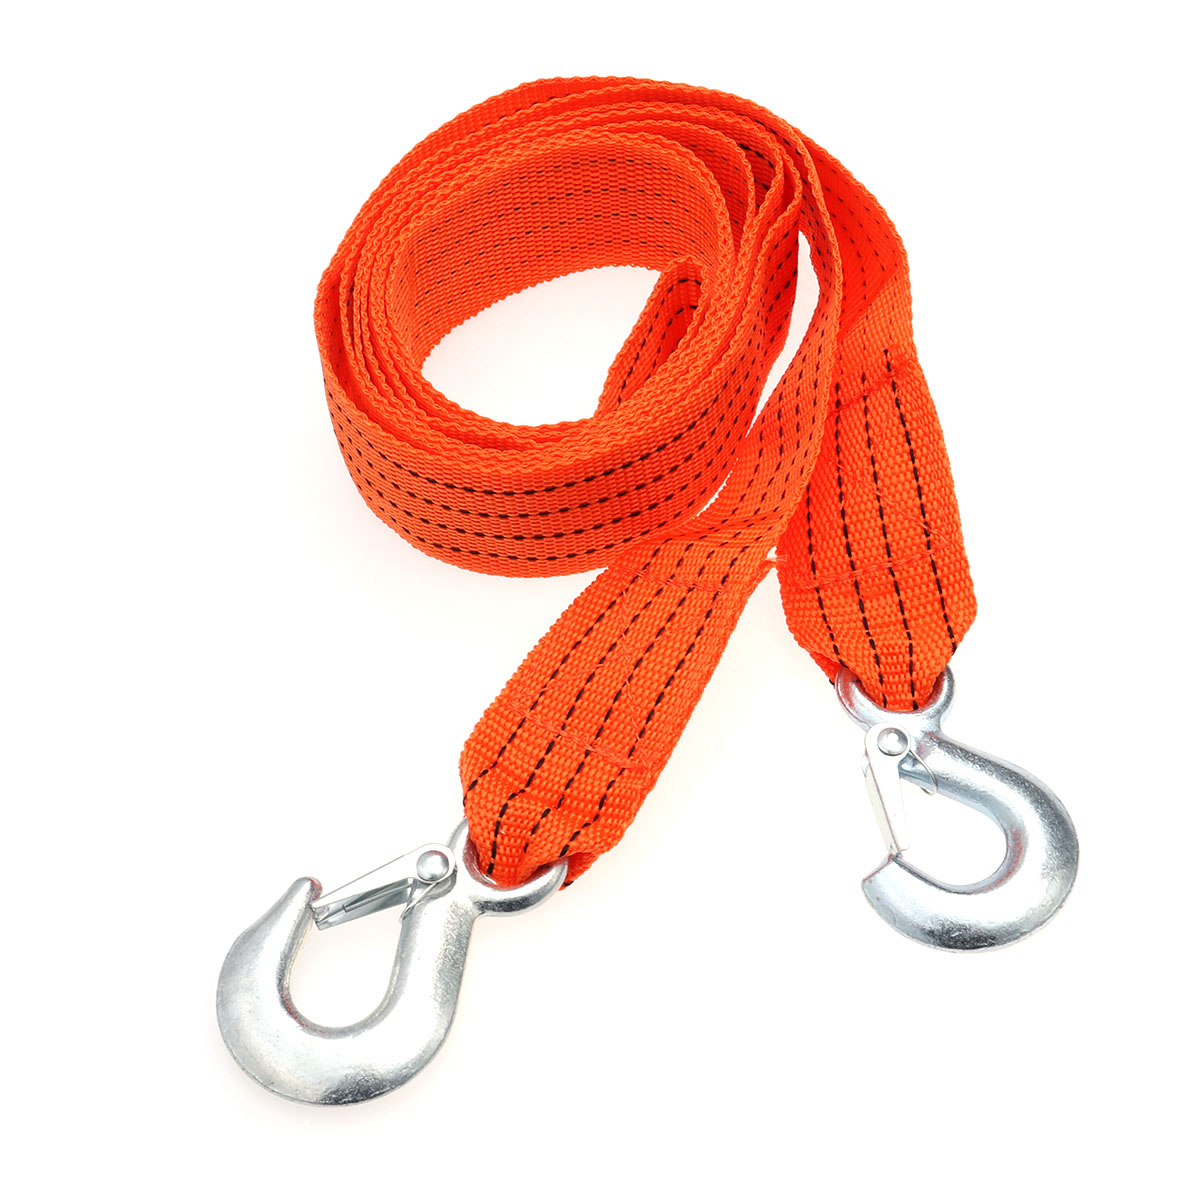 Trailer-Rope Durable for Car Truck SUV Ropes A30 3ton 2-Hooks Nylon Emergency-Kit Practical title=